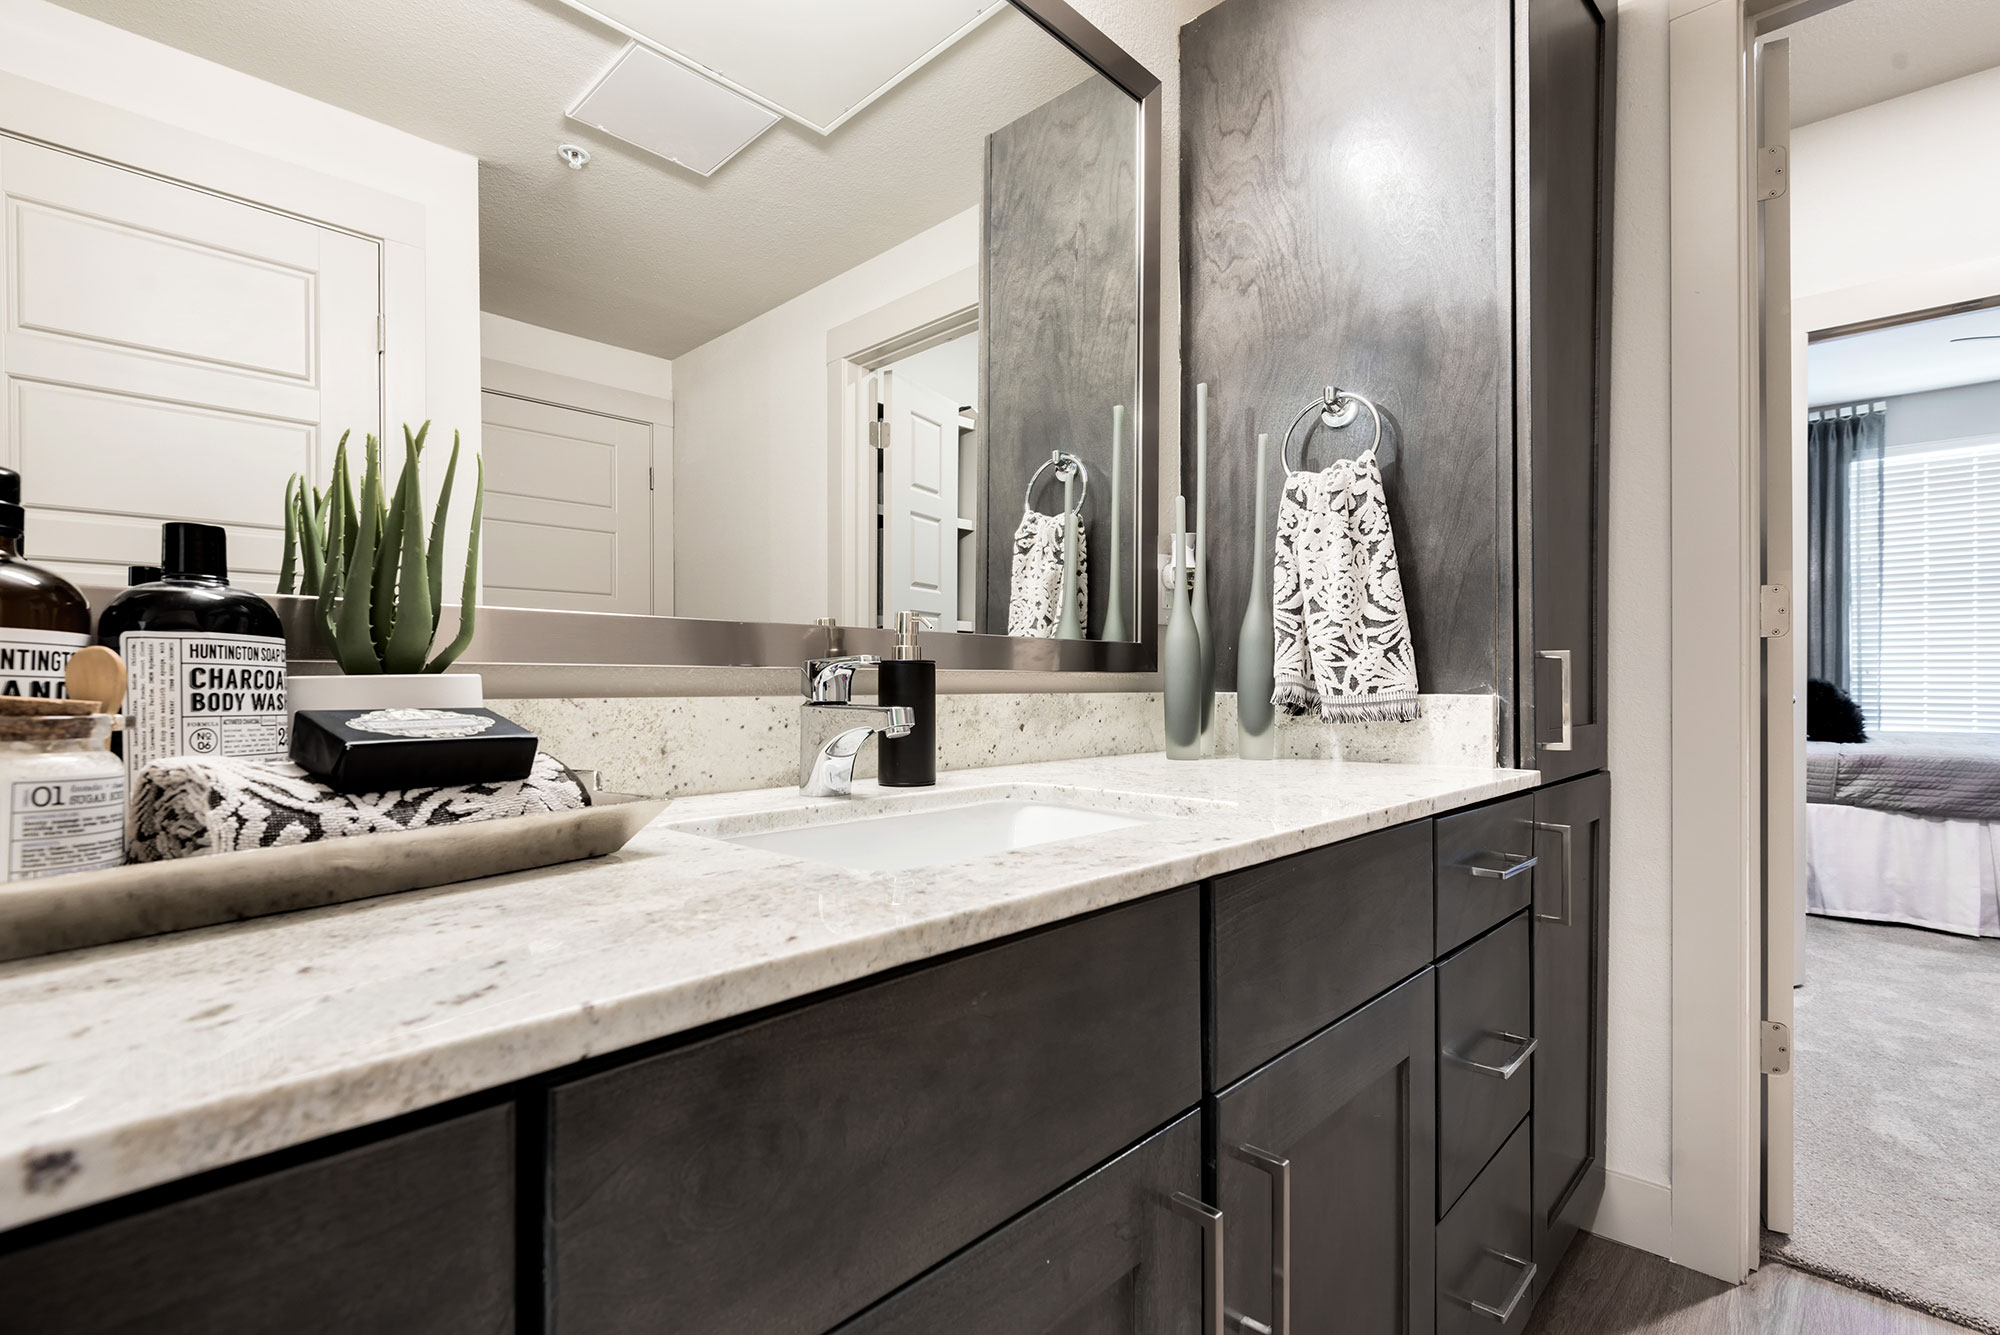 Riata - Model Unit - Alternate Bathroom Vanity